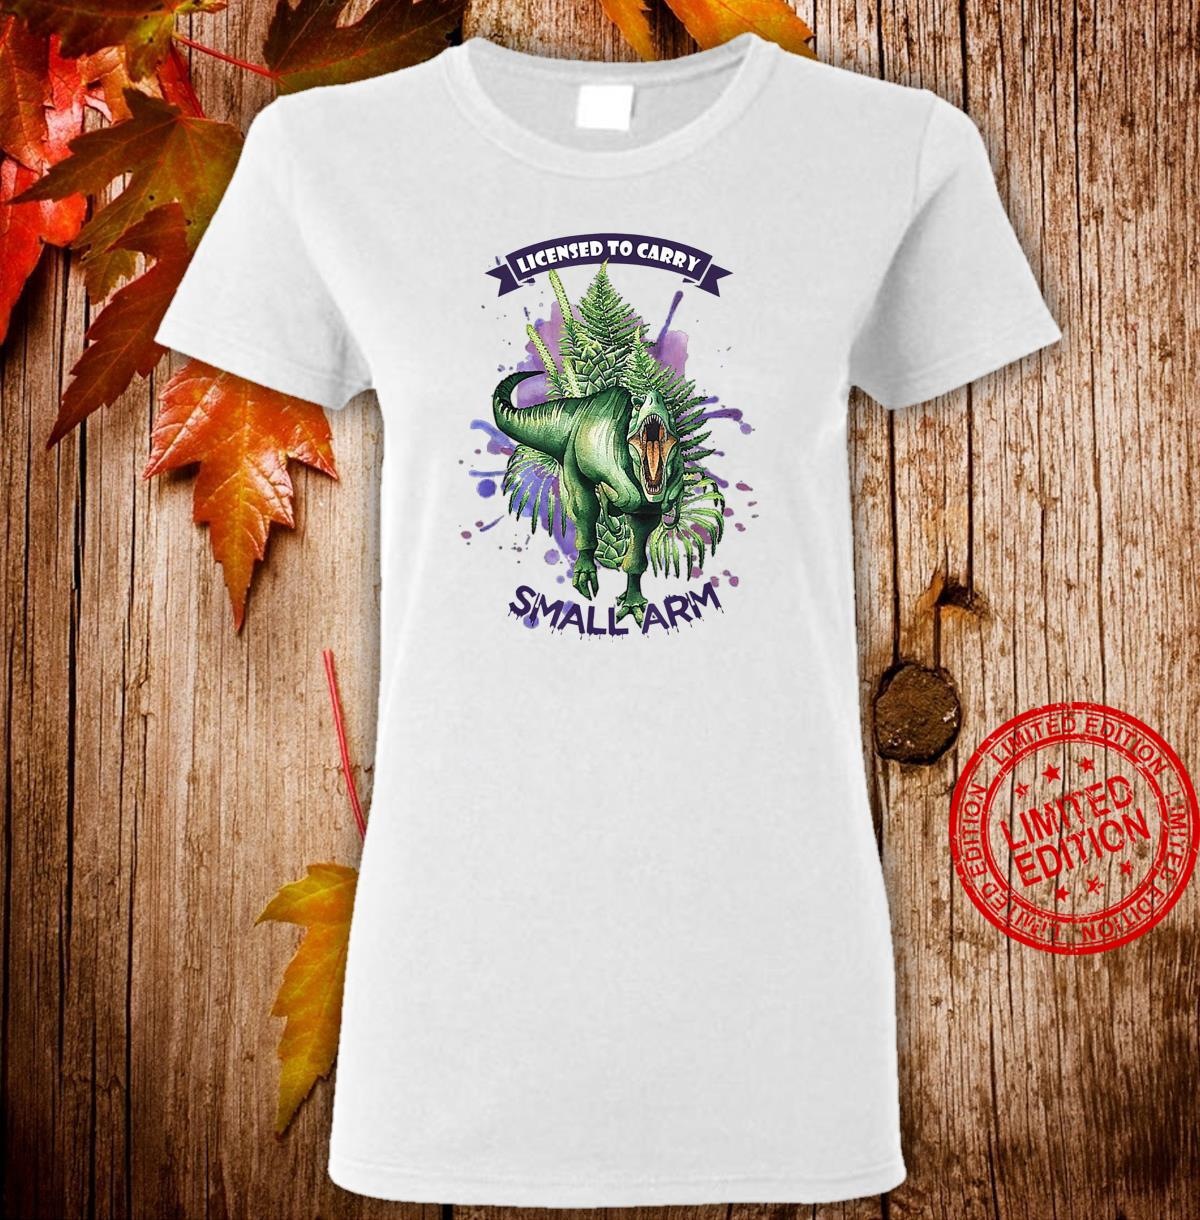 License to Carry Small Arms Dinosaurs Watercolor Tree Floral Shirt ladies tee